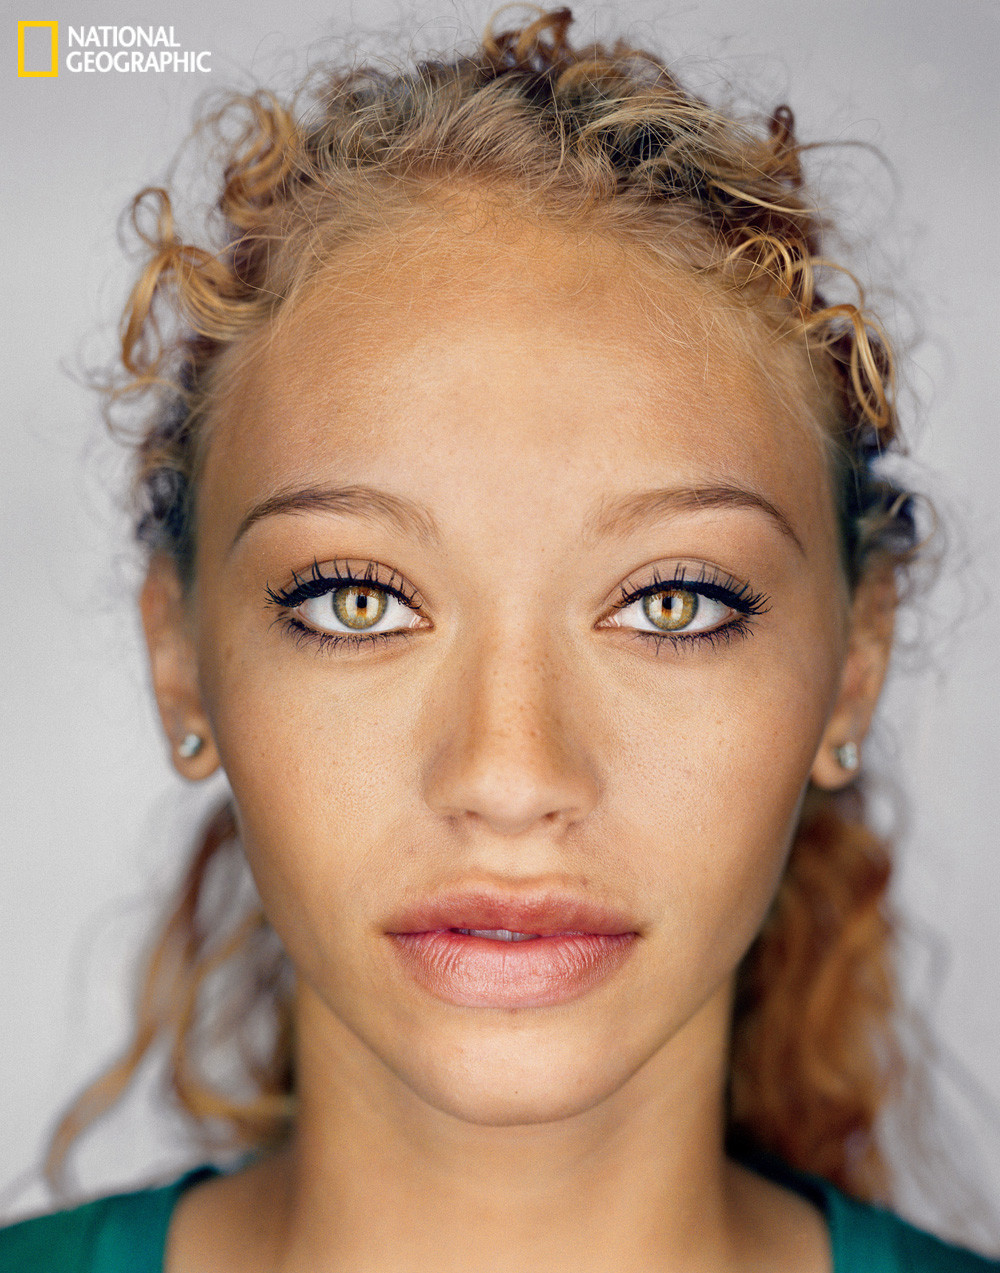 What the Average American Will Look Like by 2050